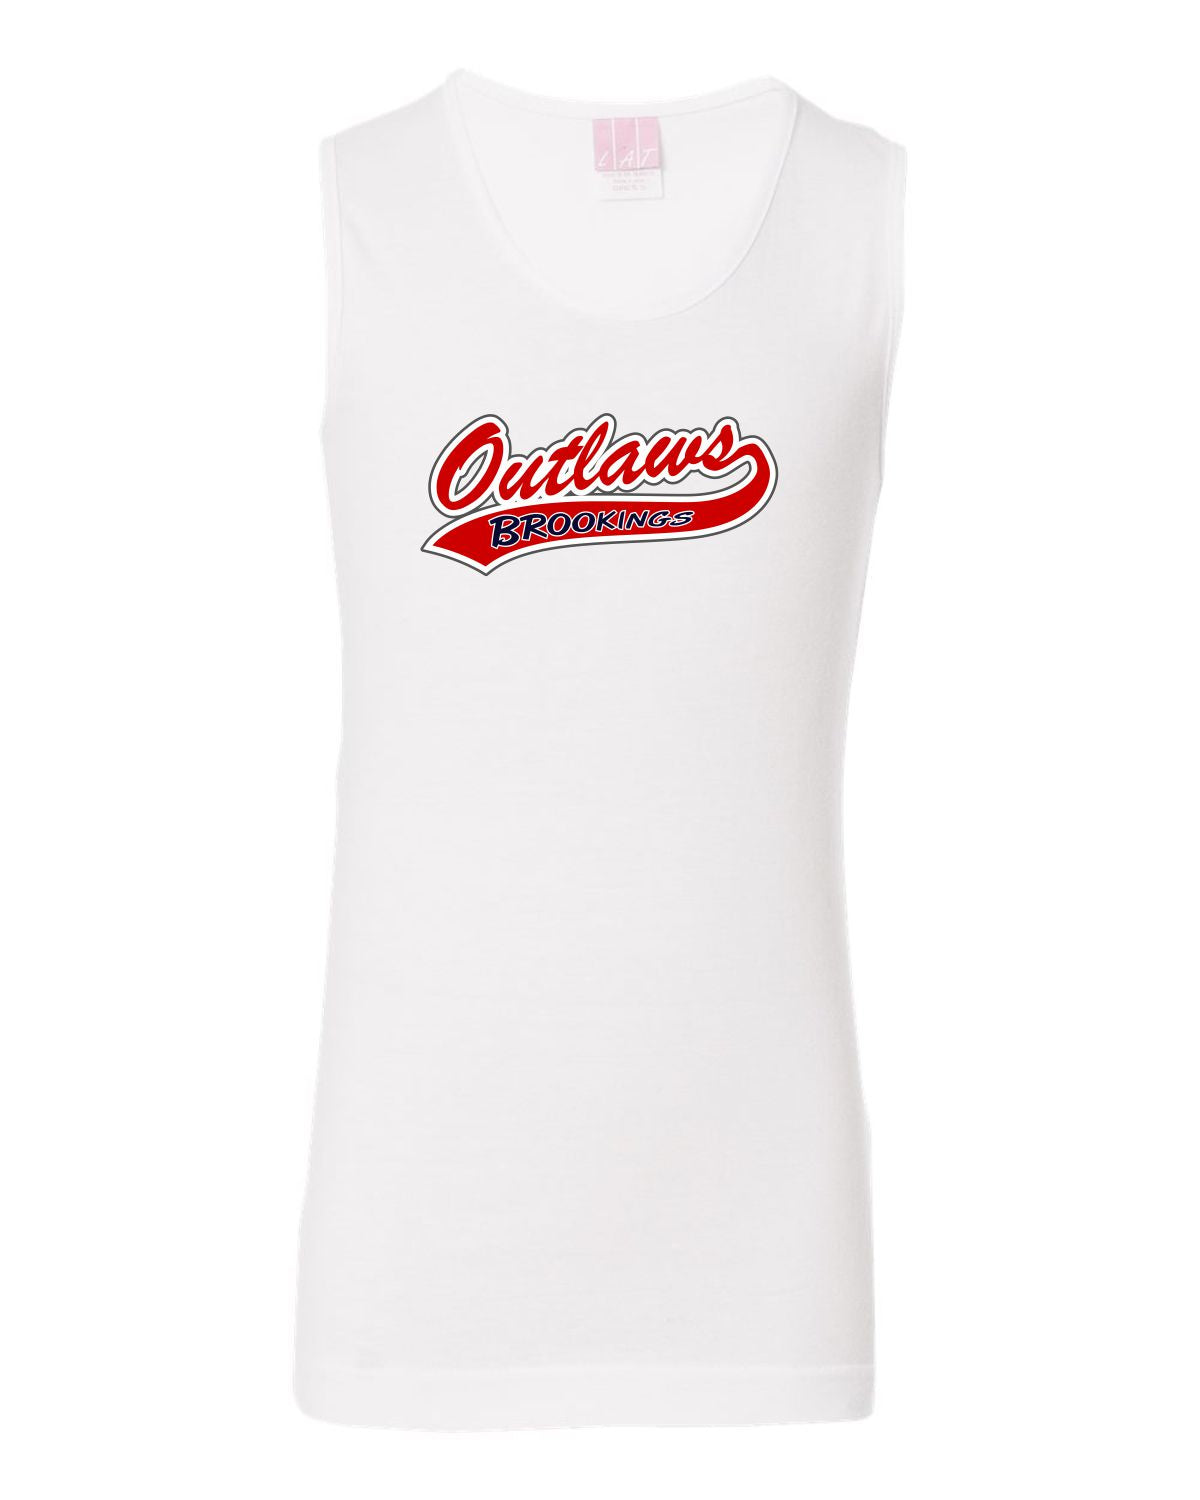 29d5d9315dc8c ... Outlaw Softball - Unisex Adult   Youth - Badger - B-Core Sleeveless T-